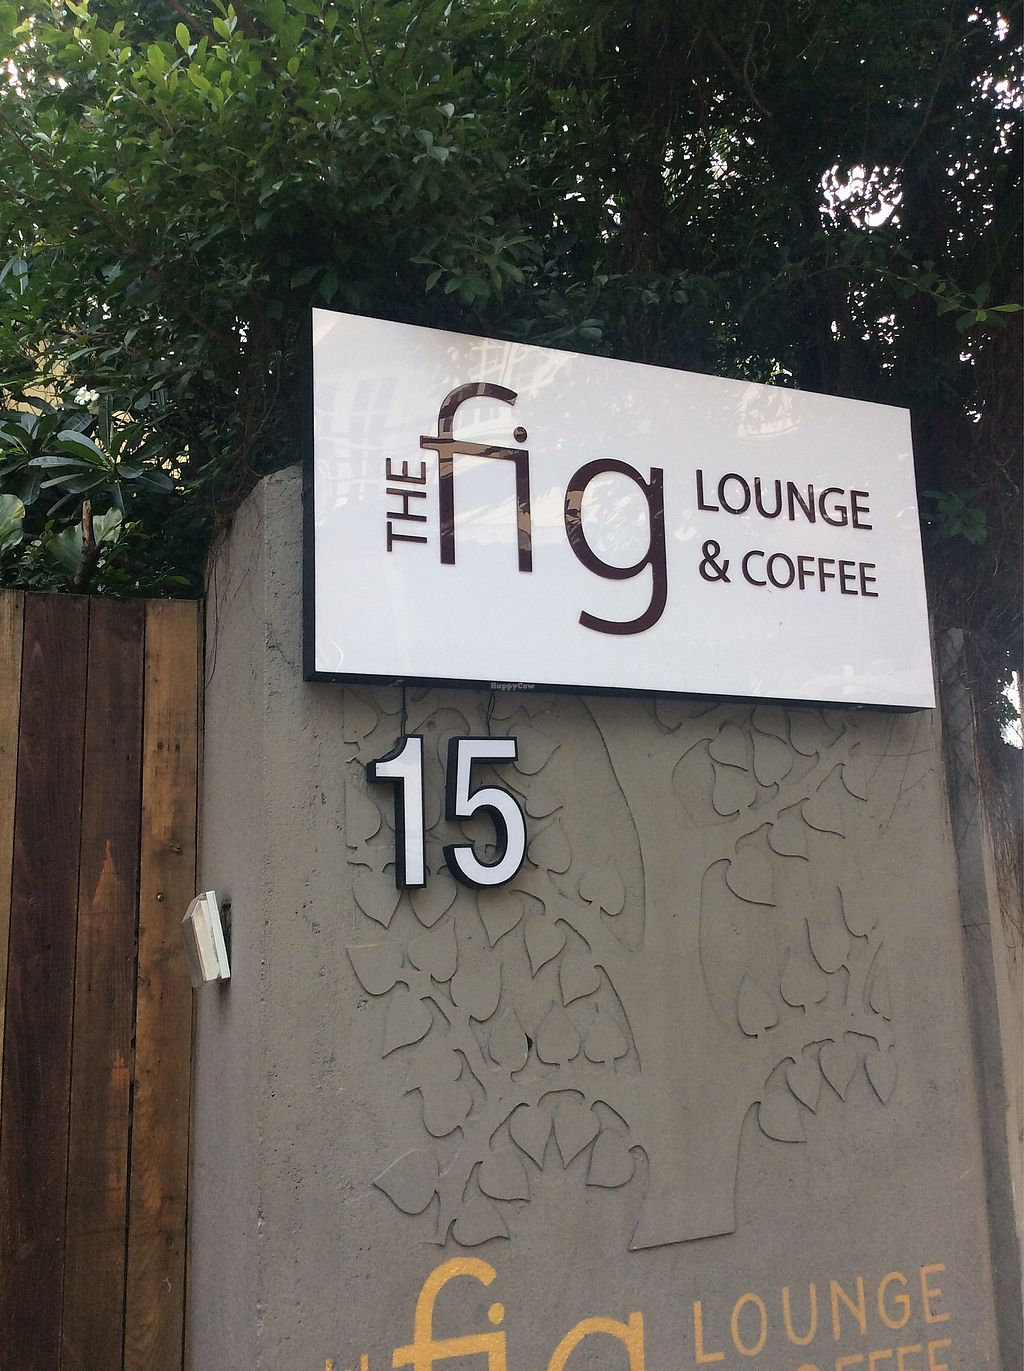 """Photo of The Fig Lounge & Coffee  by <a href=""""/members/profile/grahamjohnhunt"""">grahamjohnhunt</a> <br/>entrance <br/> February 1, 2018  - <a href='/contact/abuse/image/77828/353514'>Report</a>"""